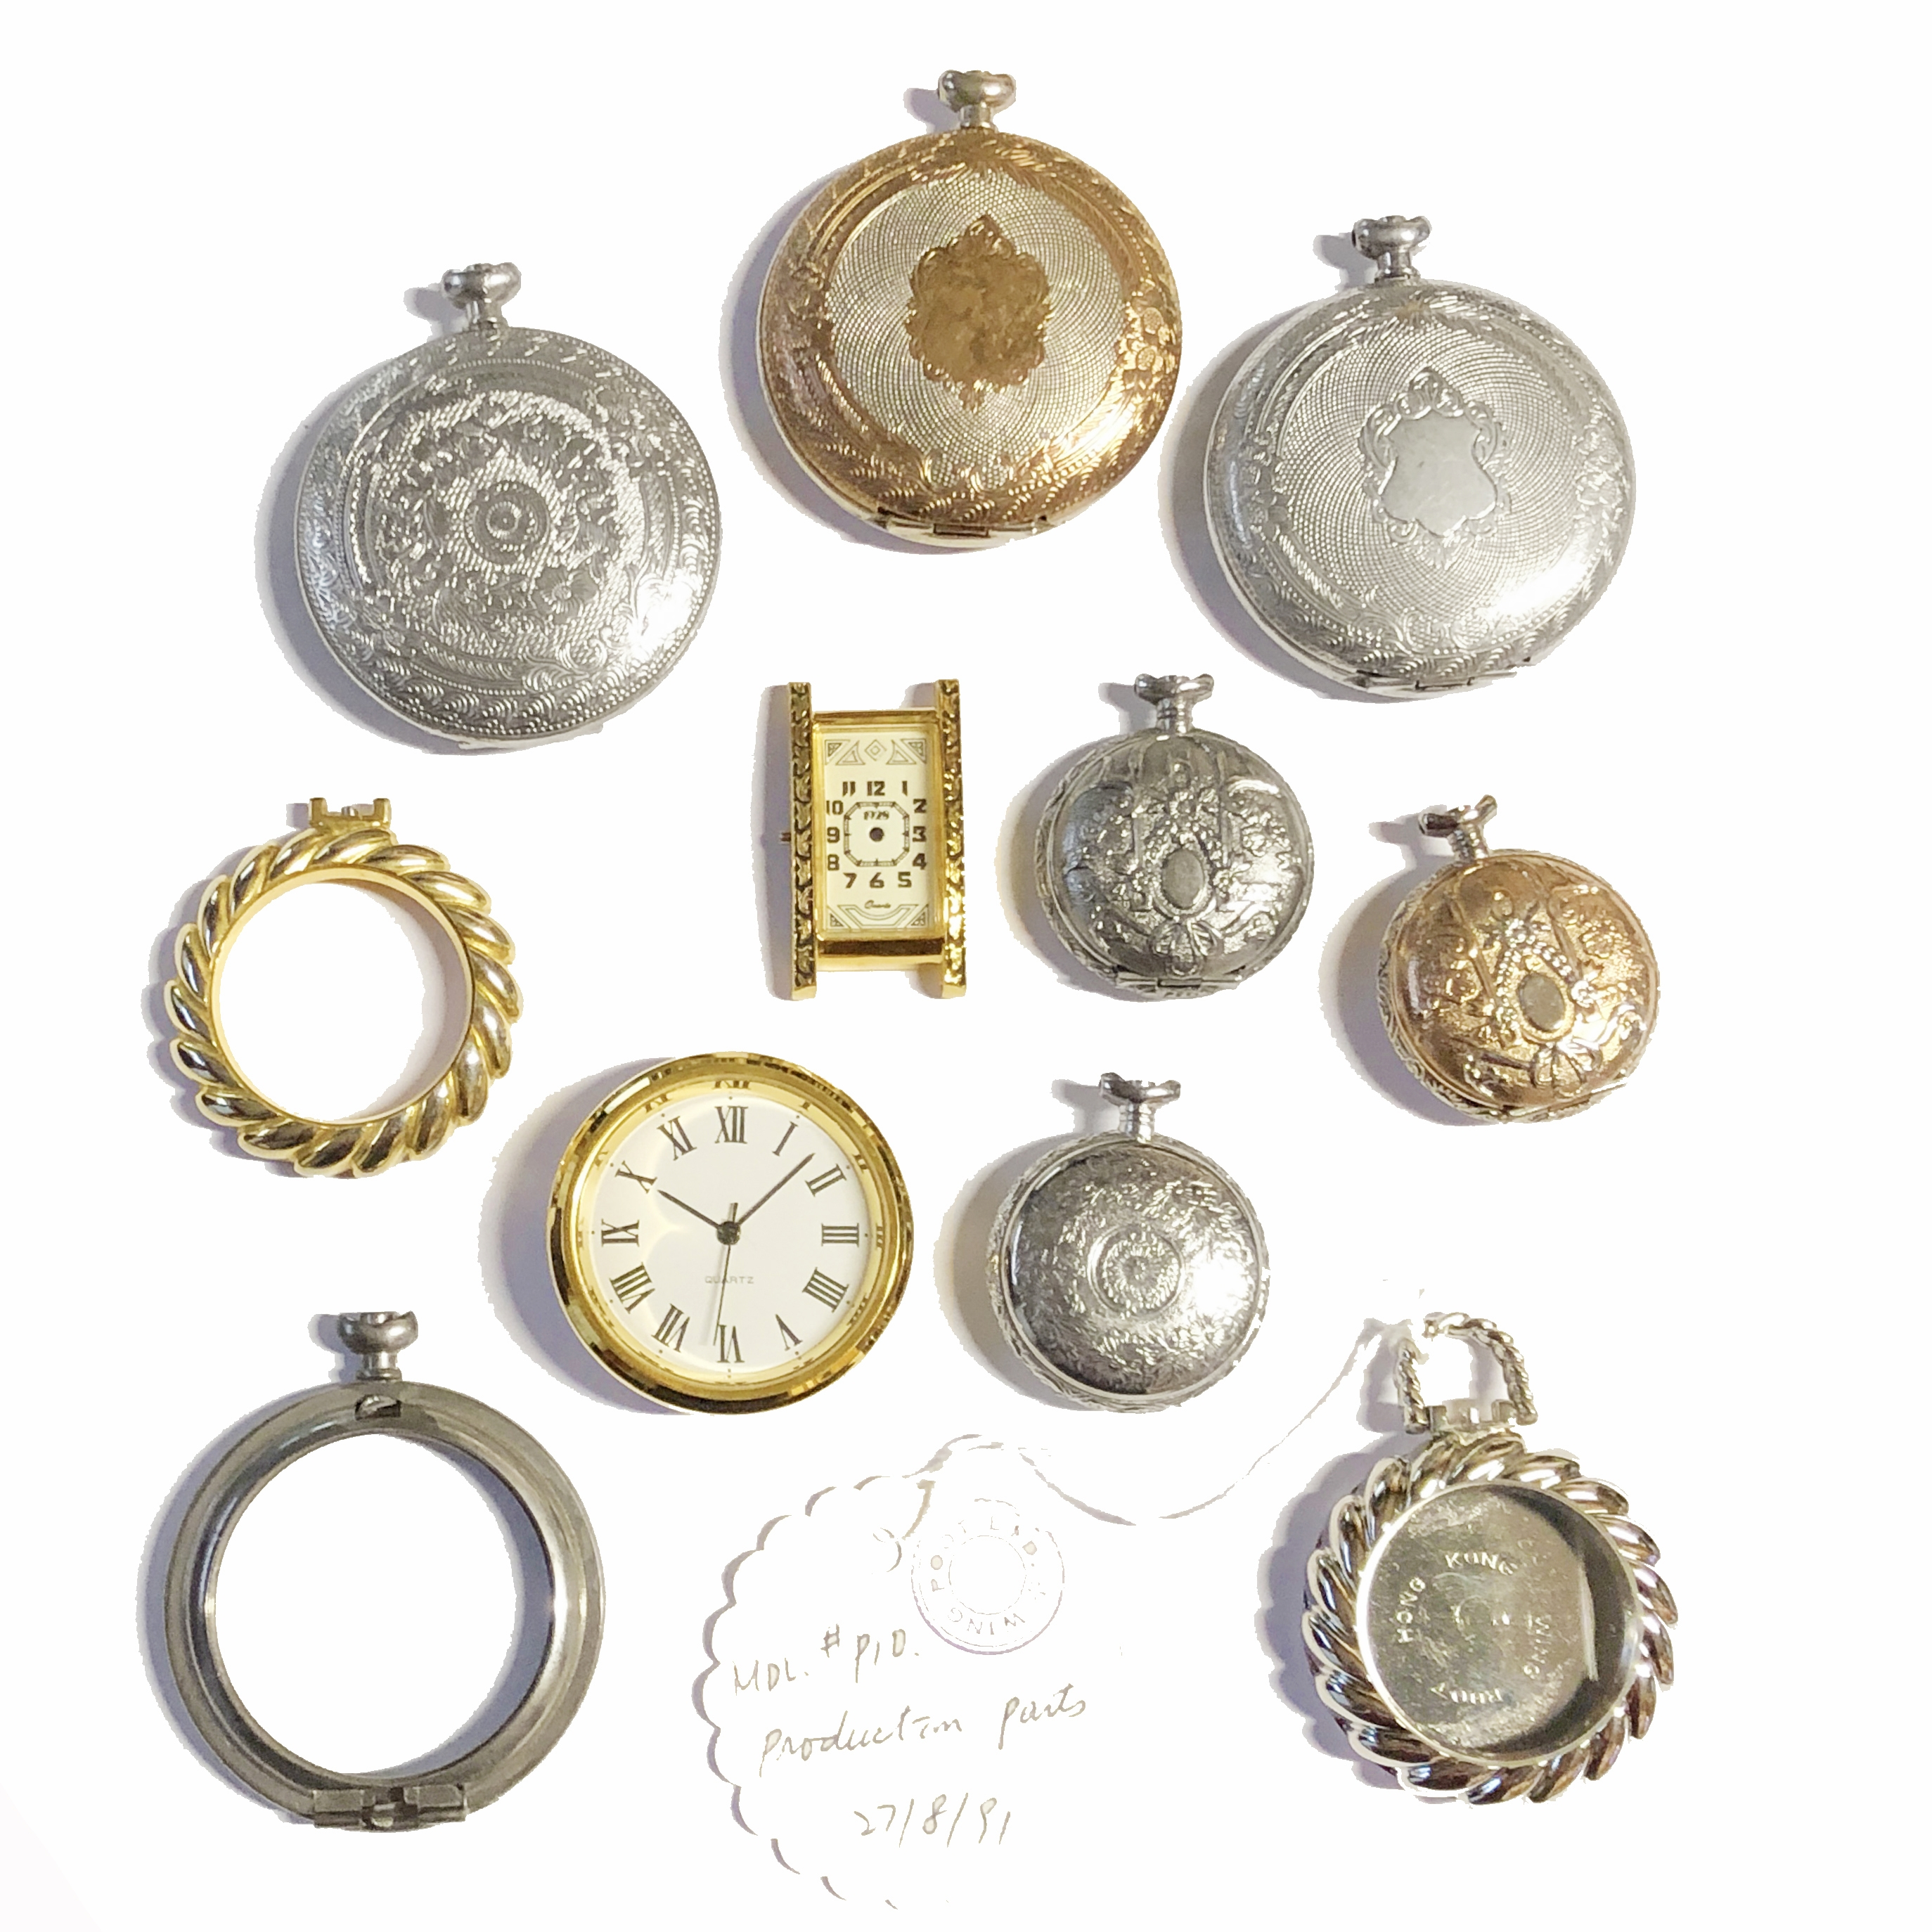 Assorted Vintage Designer Watch Cases, 1928 Jewelry Company, Full and  Partial Watch Cases, Pocket Watches, Jewelry Making Supplies